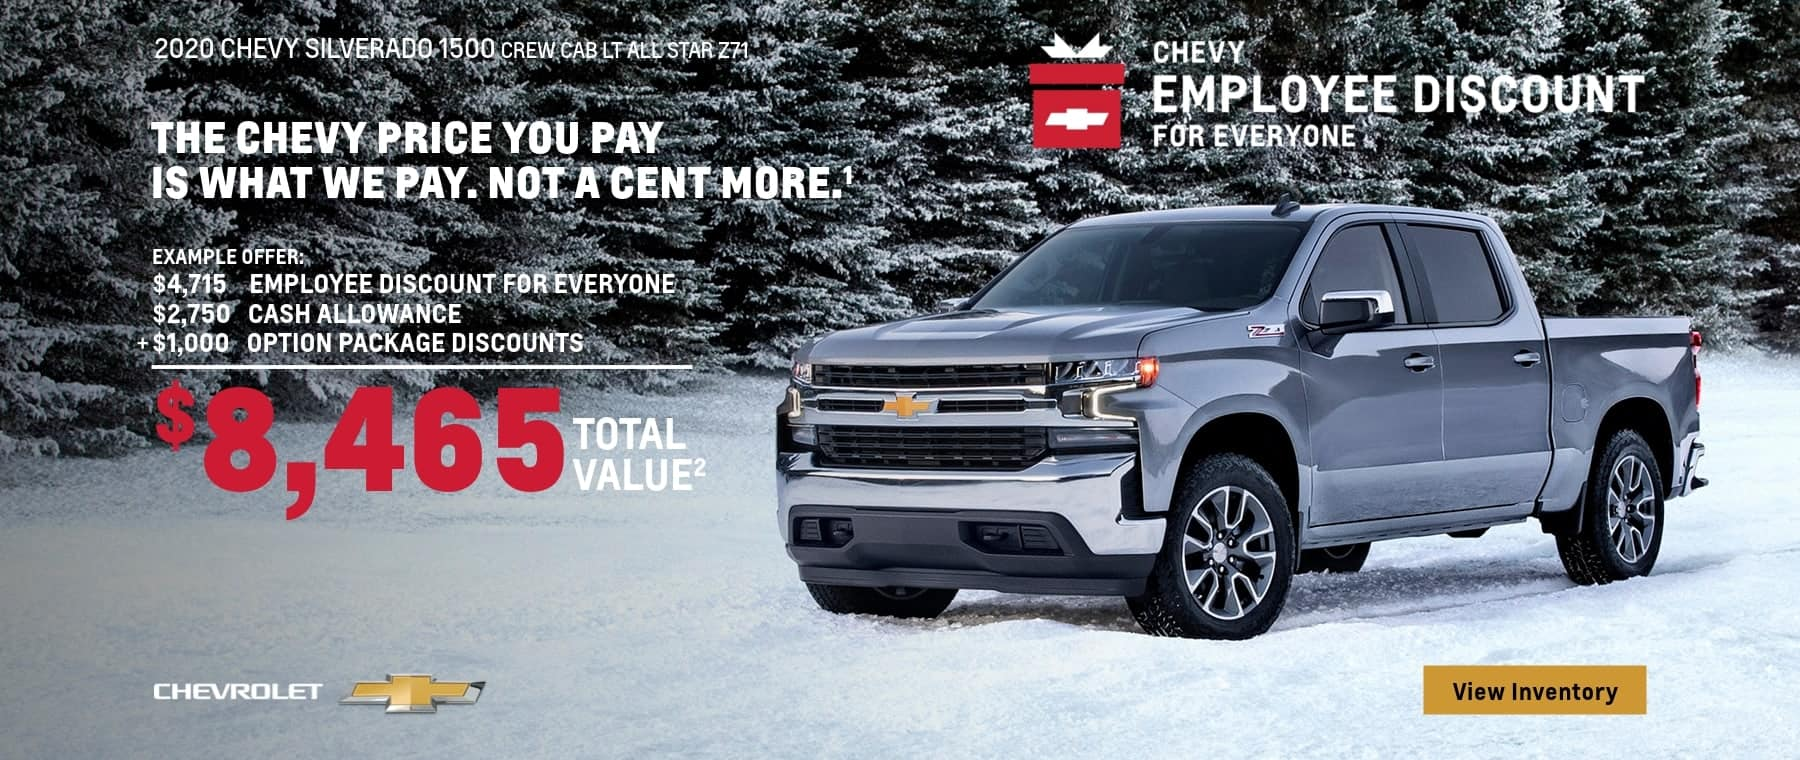 The Chevy Employee Discount For Everyone. The Chevy Price you pay is what we pay. Not a cent more. $8,465 Total Value on this 2020 Silverado 1500 Crew Cab LT All Star Z71.